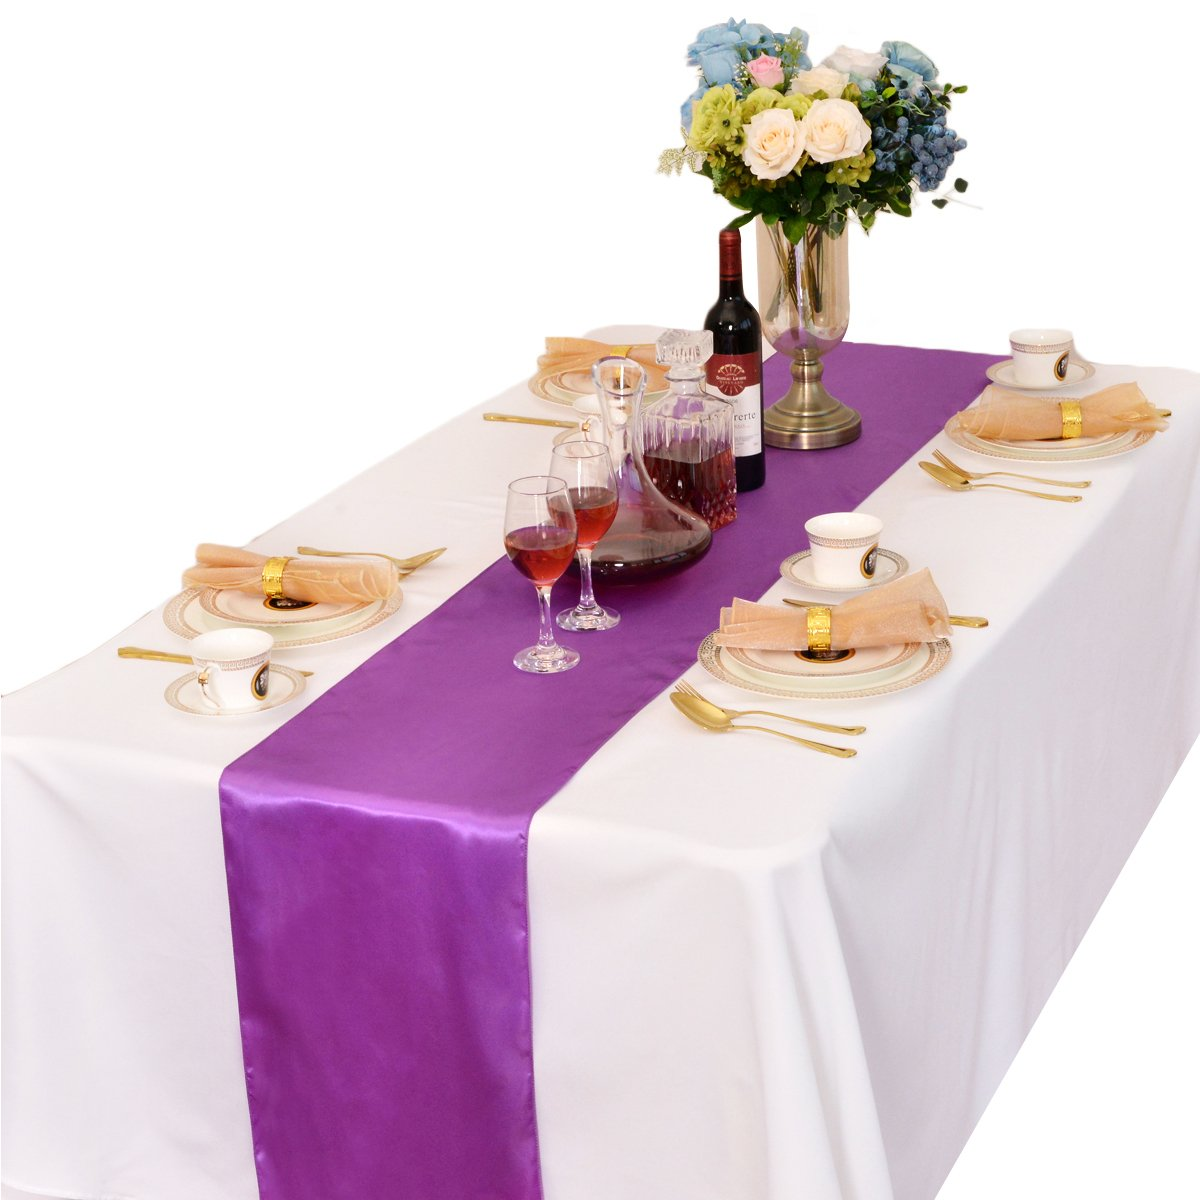 LOVWY 12 x 108 Inch Satin Table Runner 1/5/10/15/20 PCS Wedding Party Banquet Decoration (Colors Optional) (5, Lavender)